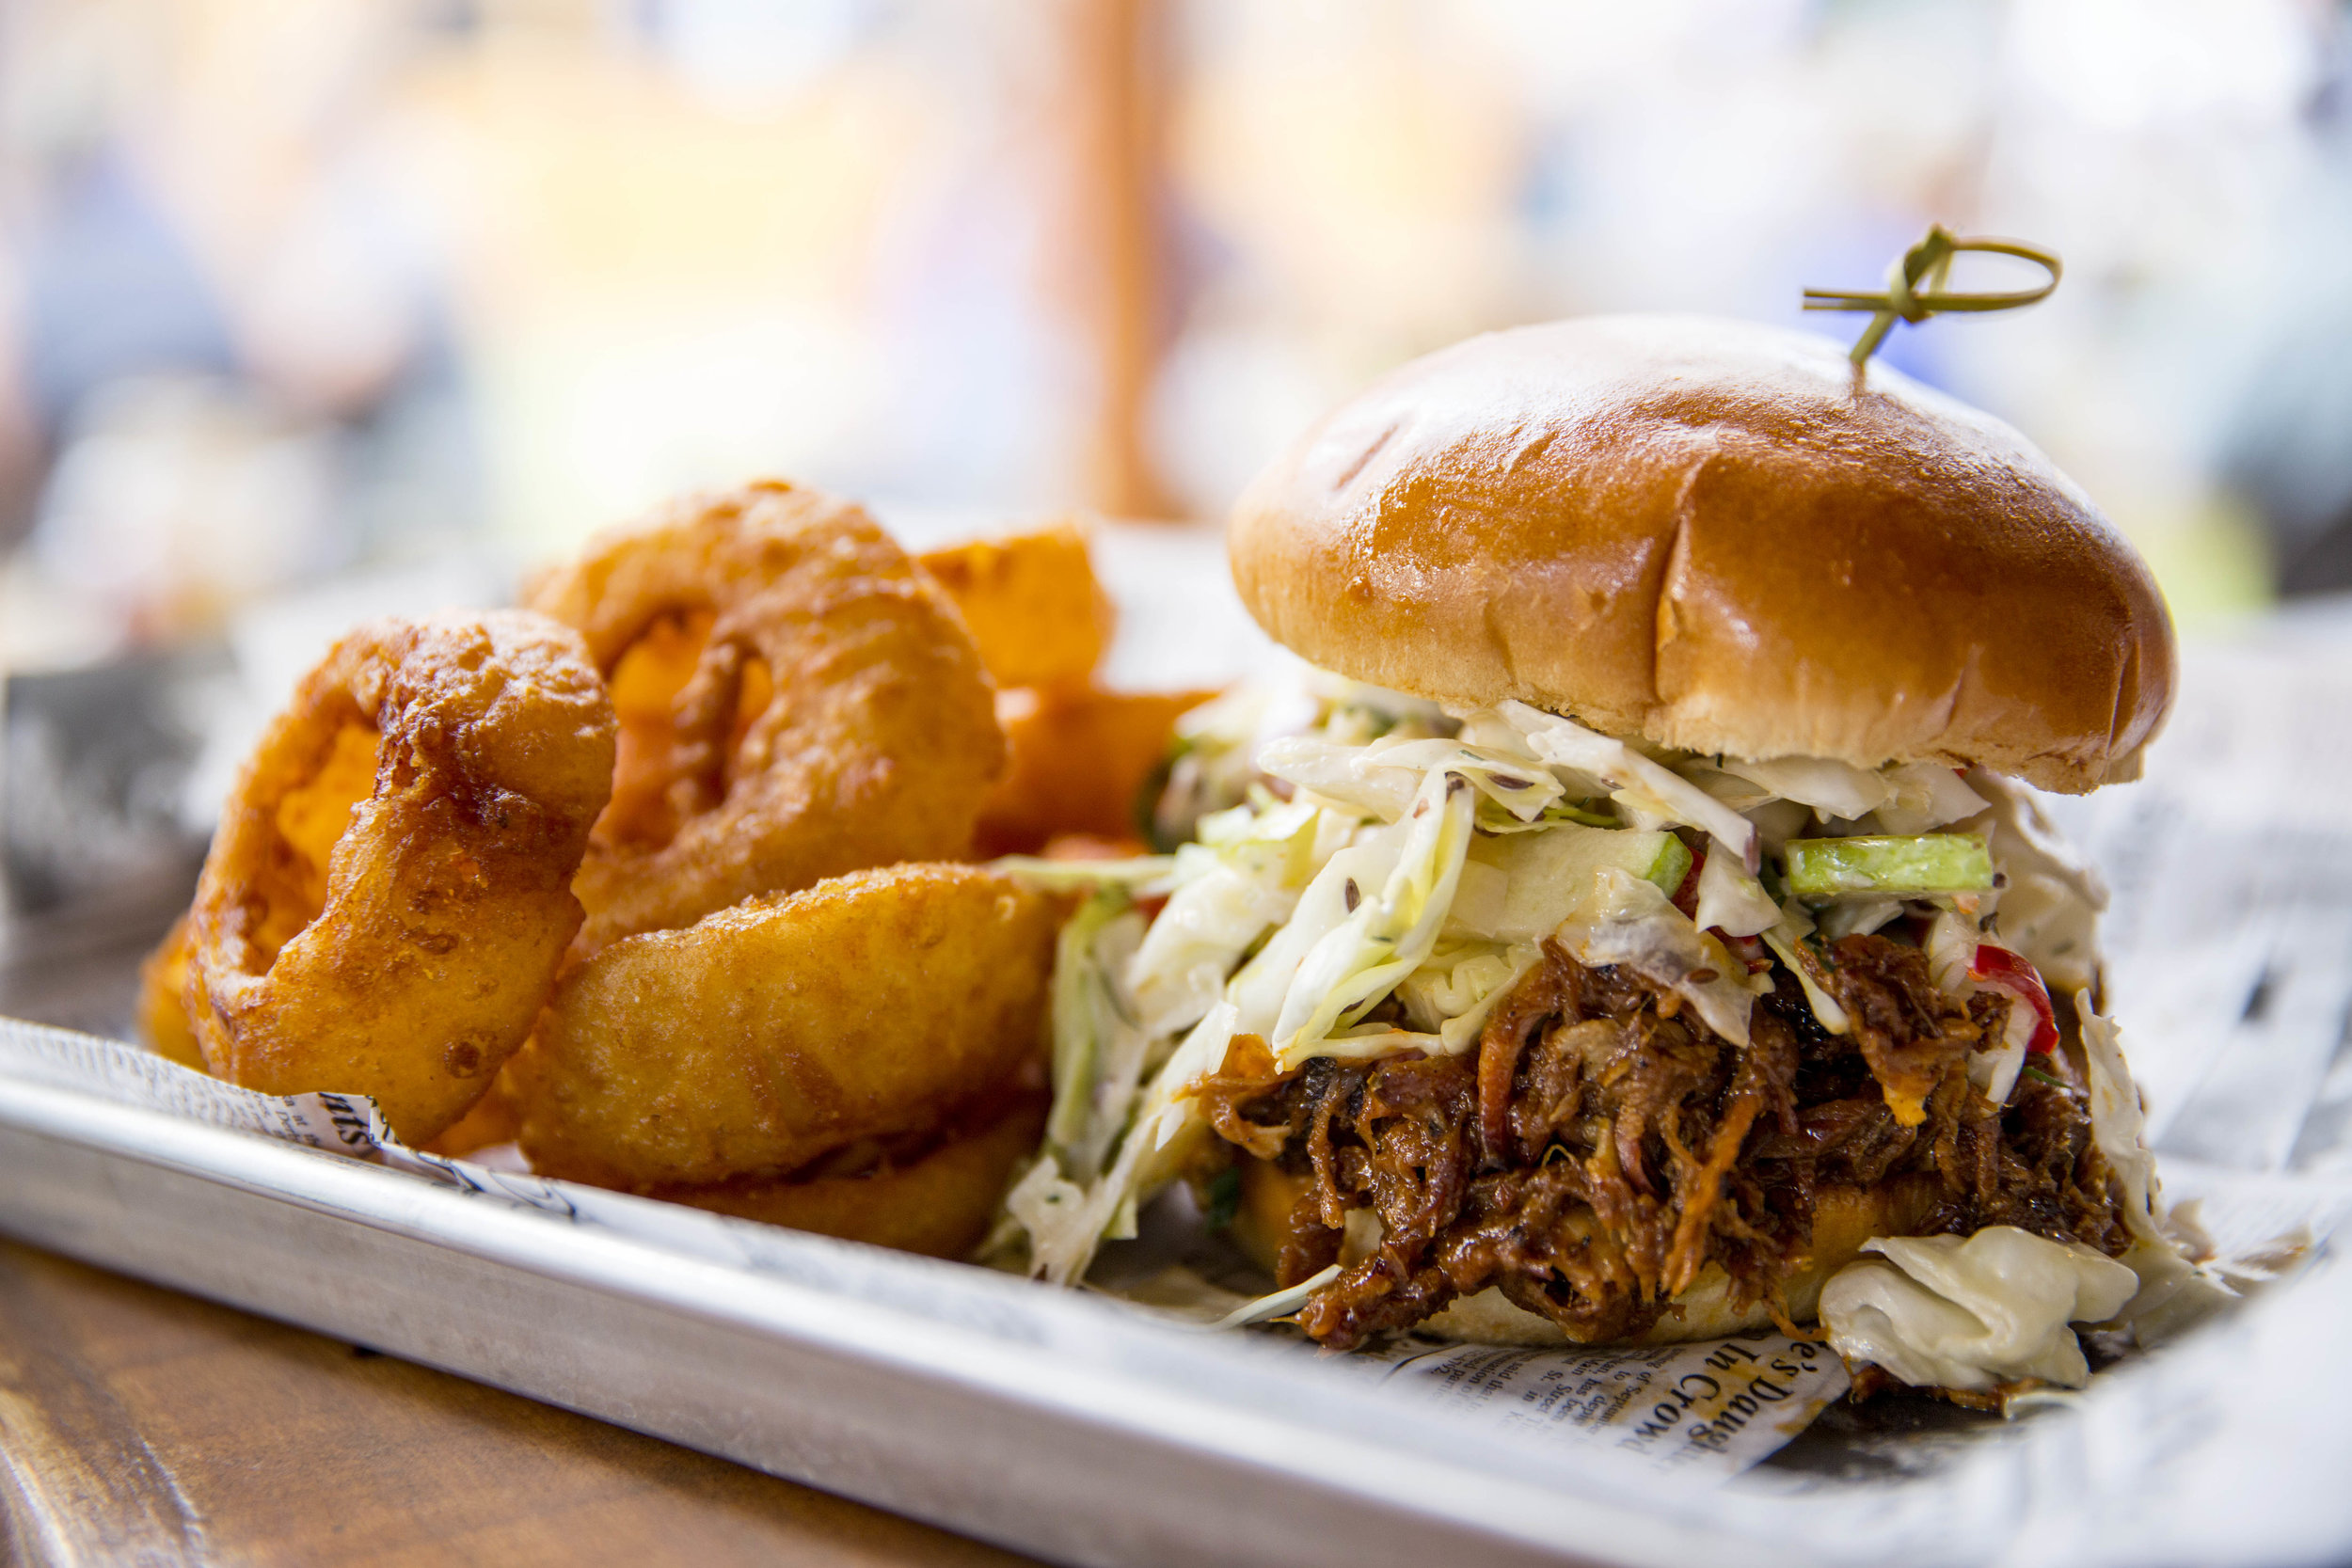 good eats - With plenty of appetizers, a handful of sandwiches, several burger choices, and great entrees, our pub grub menu has something for everyone.